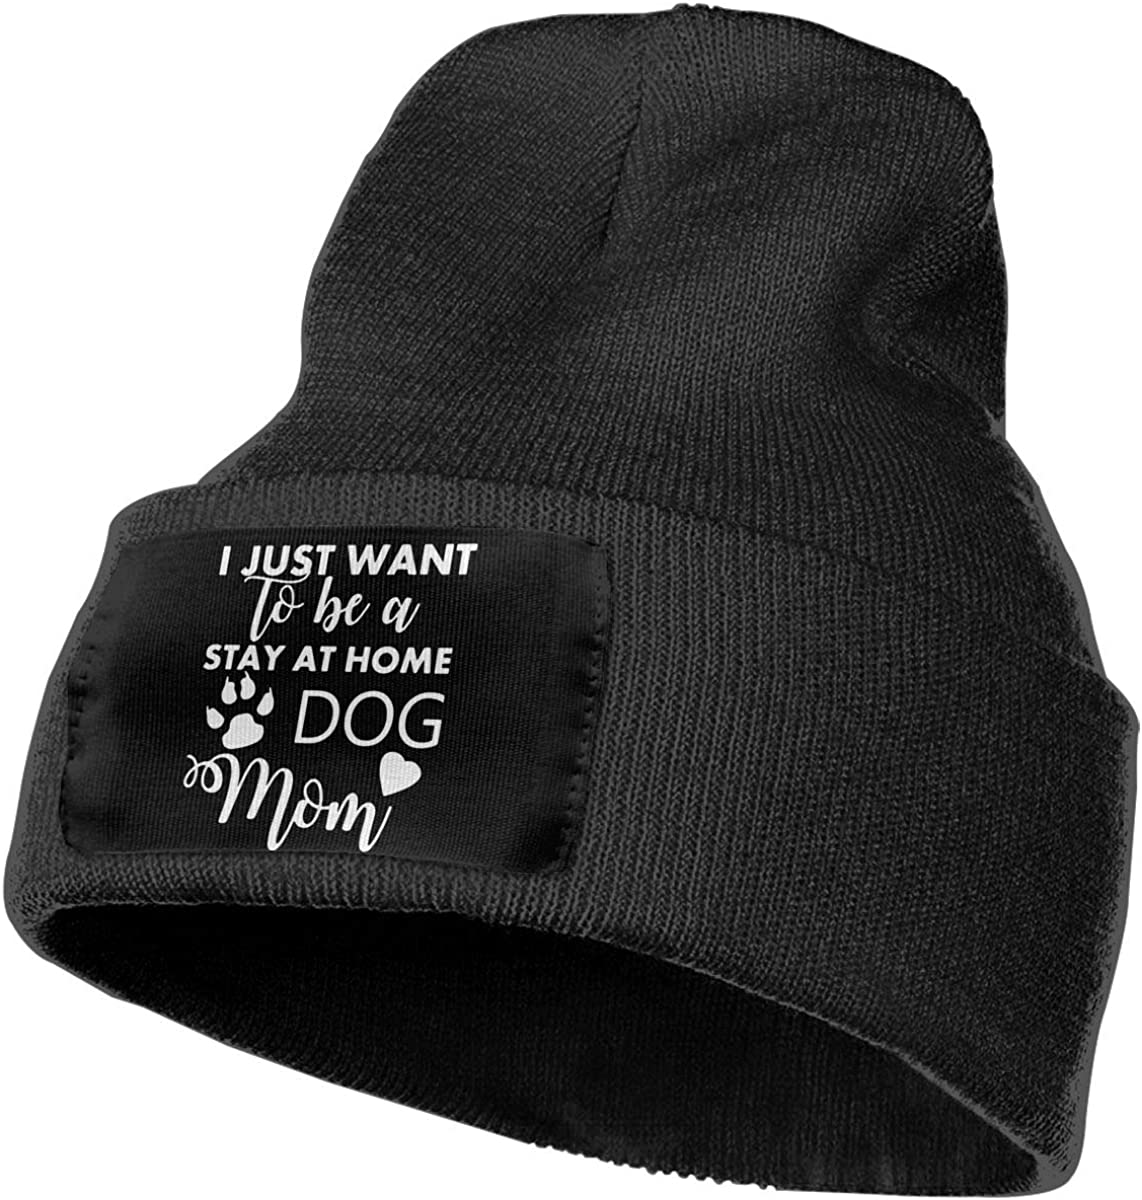 Unisex I Just Want to Be A Stay at Home Dog Mom Outdoor Stretch Knit Beanies Hat Soft Winter Knit Caps